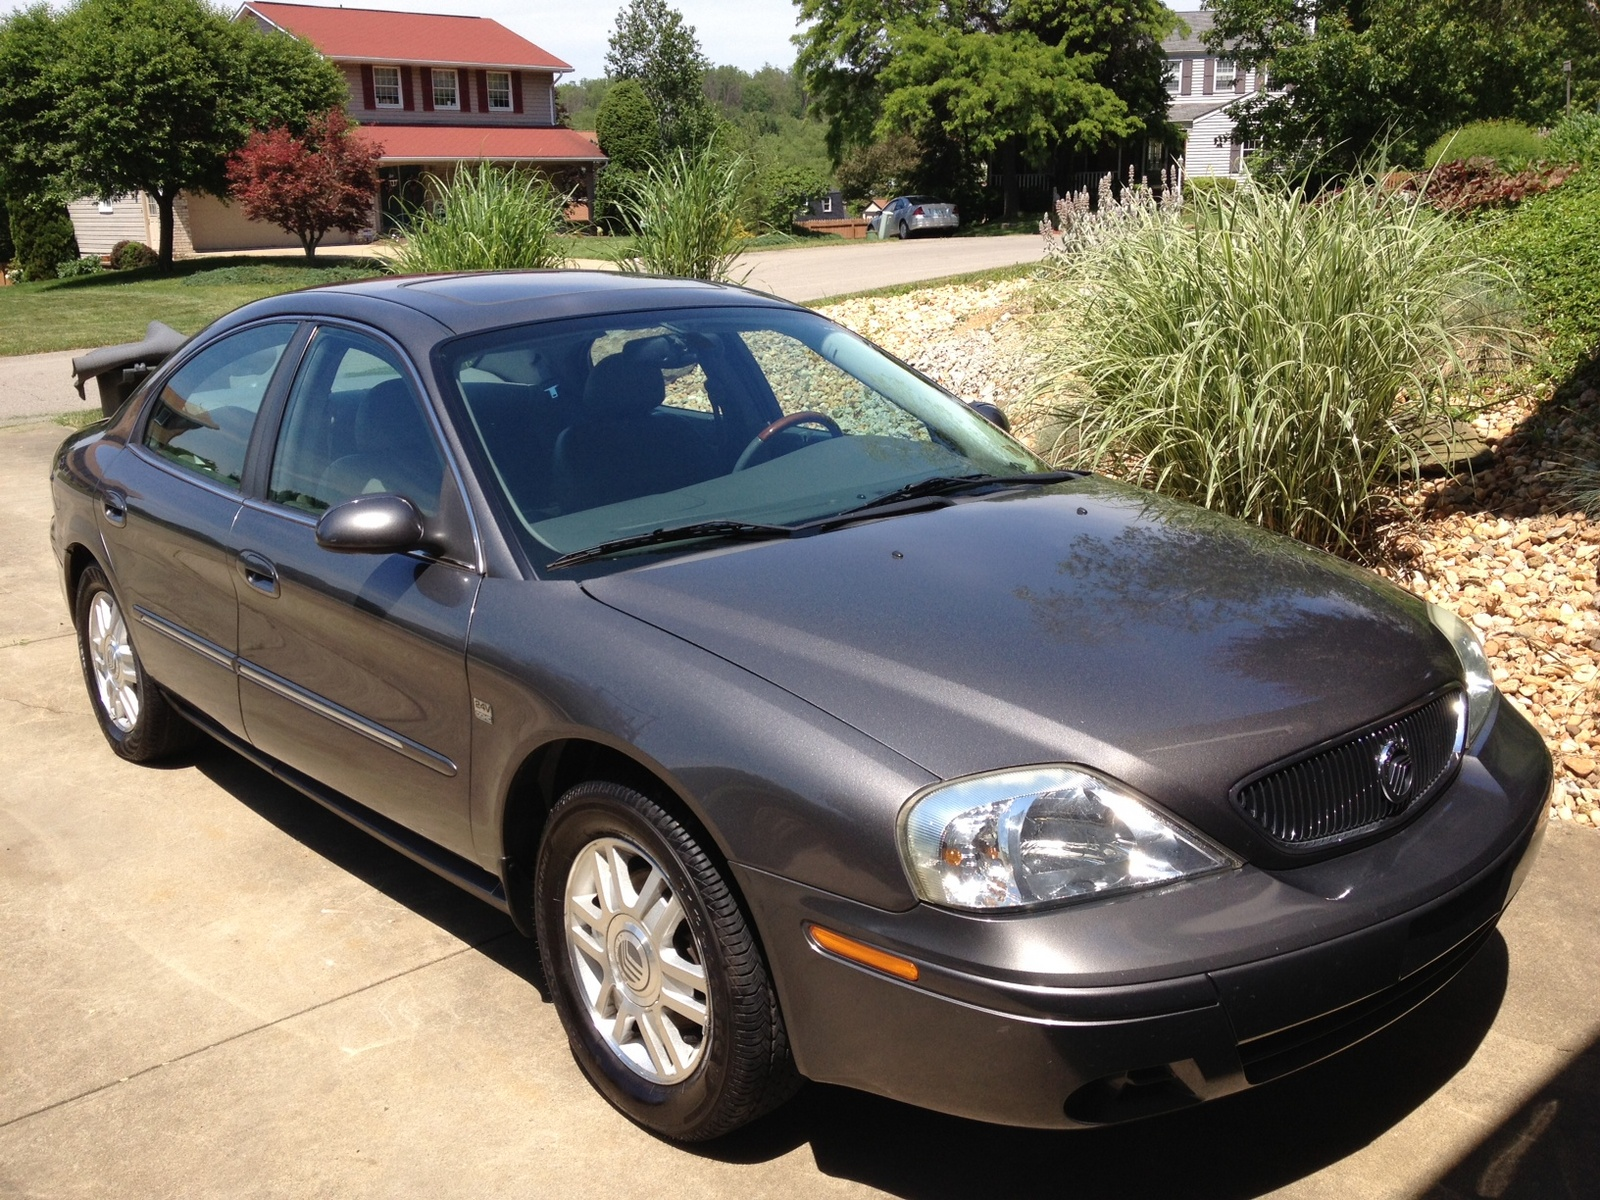 Mercury Sable Ls Pic